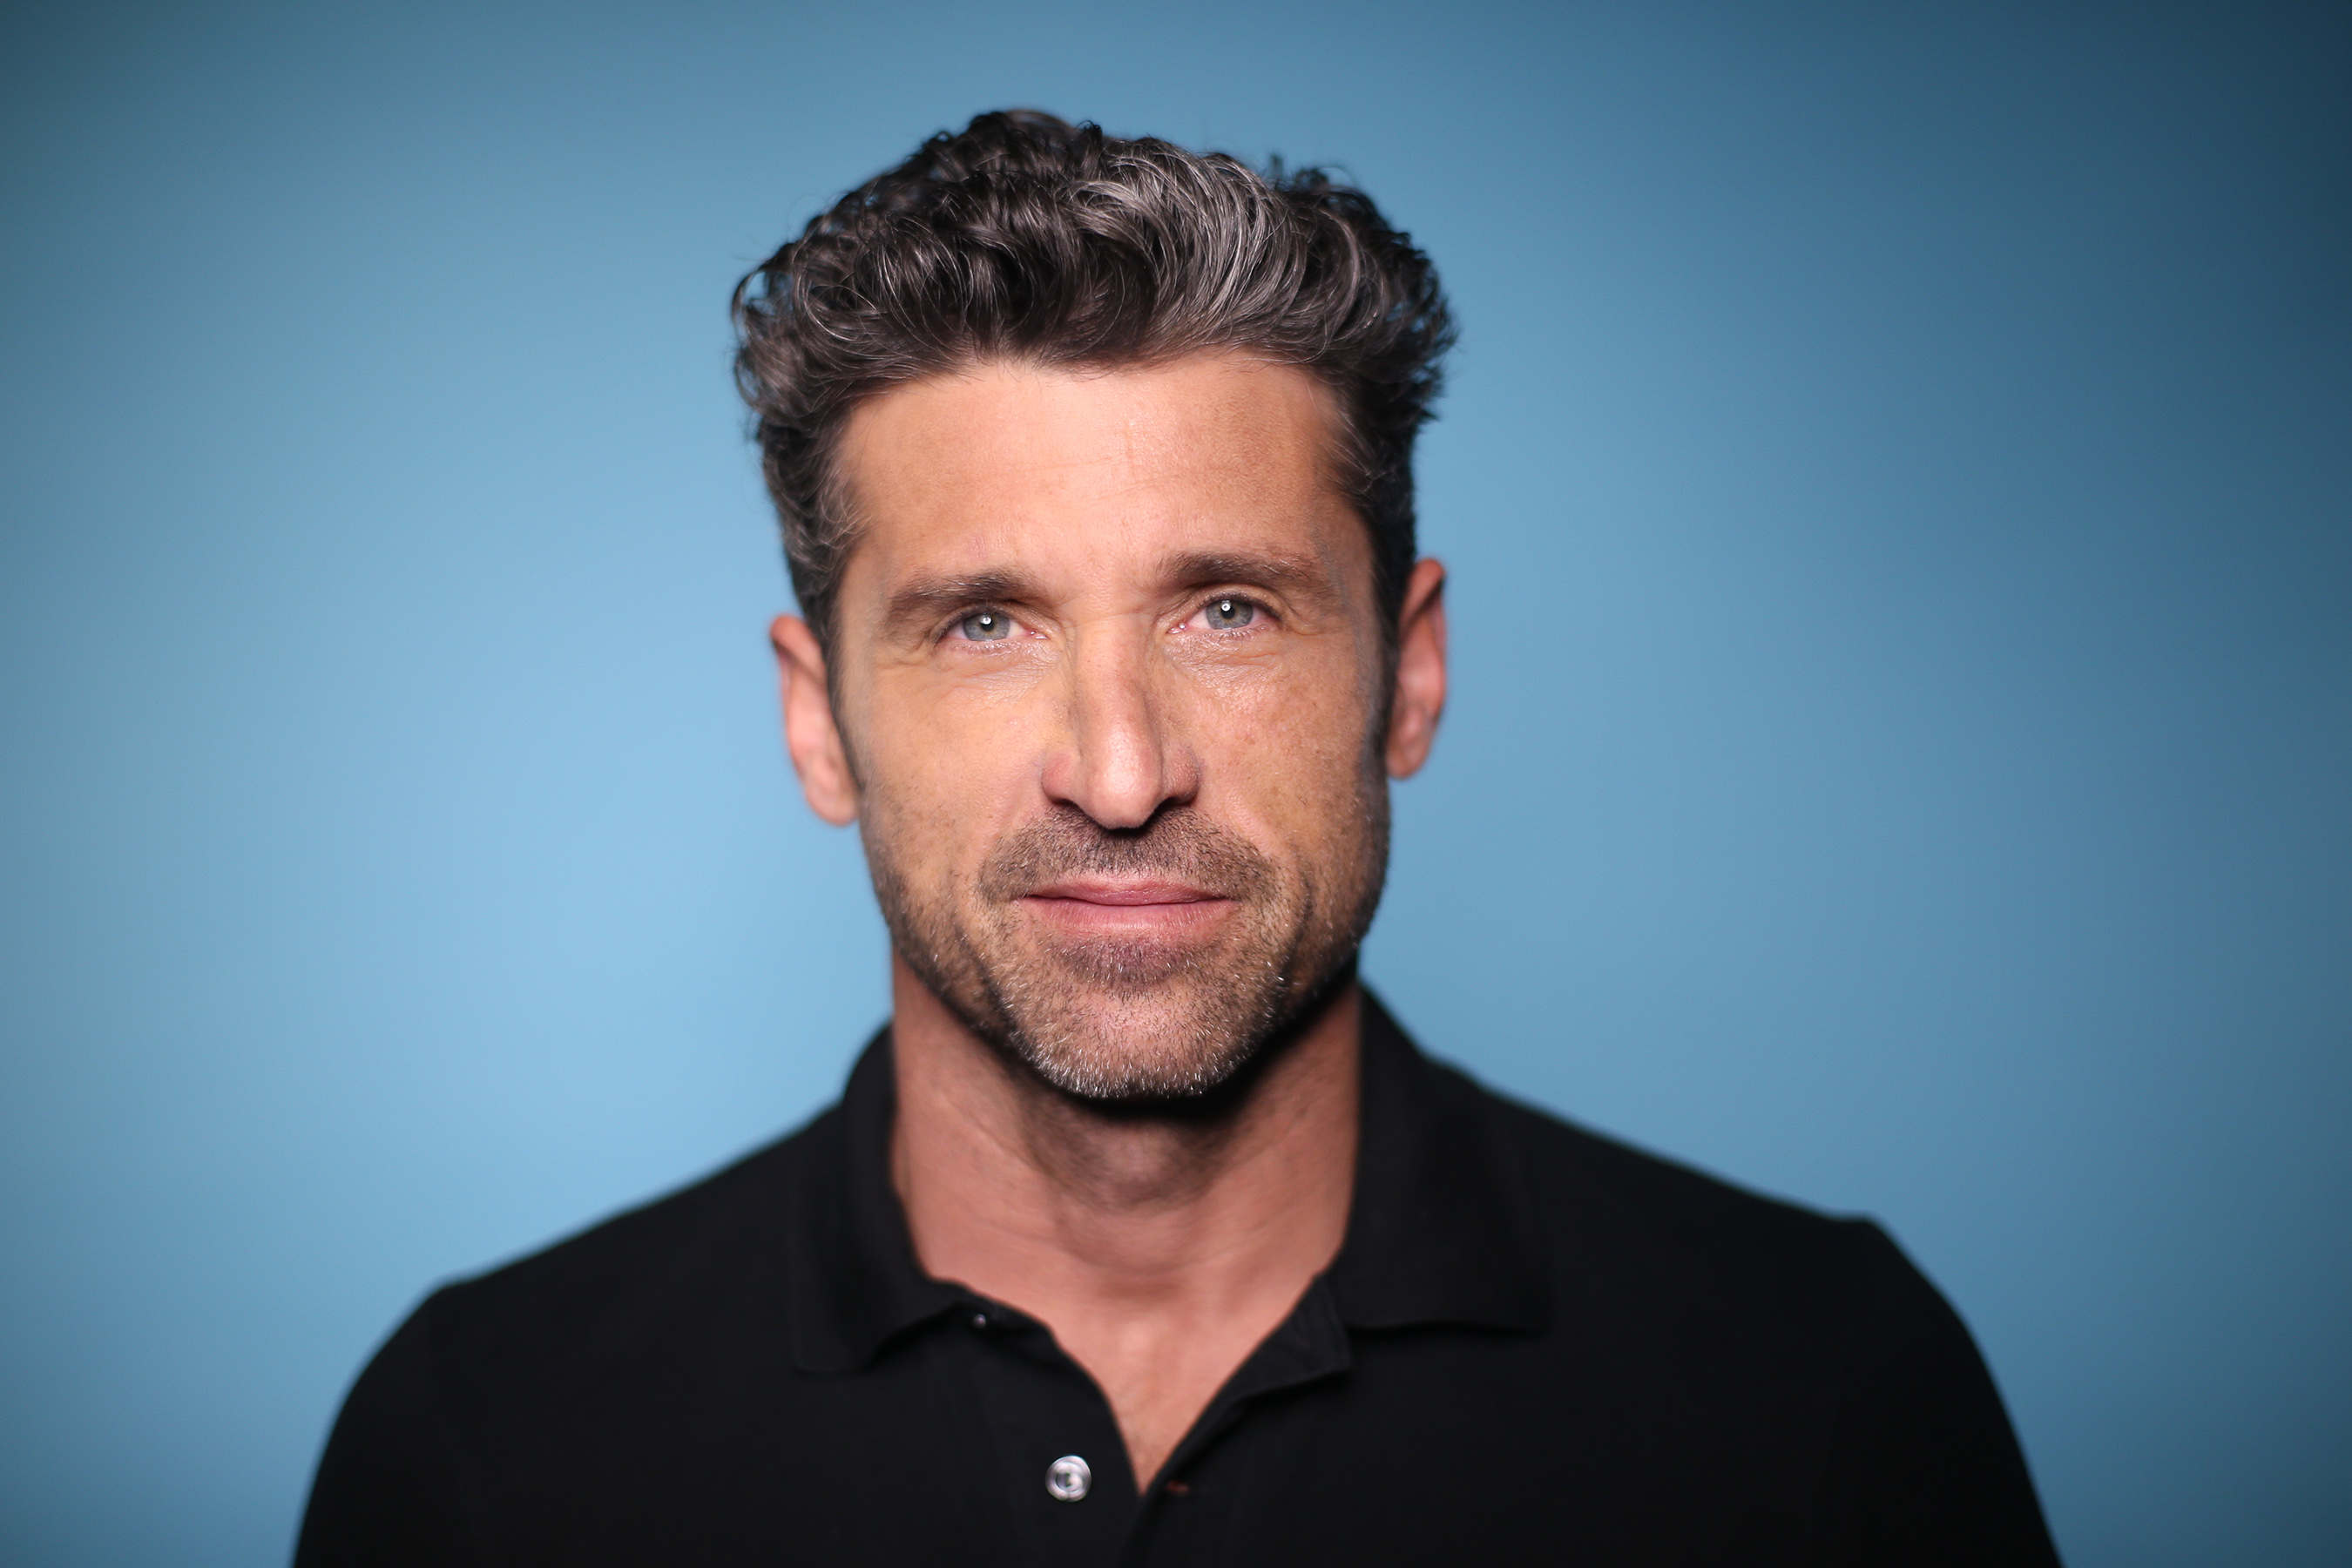 Patrick Dempsey, Breakaway from Cancer Ambassador